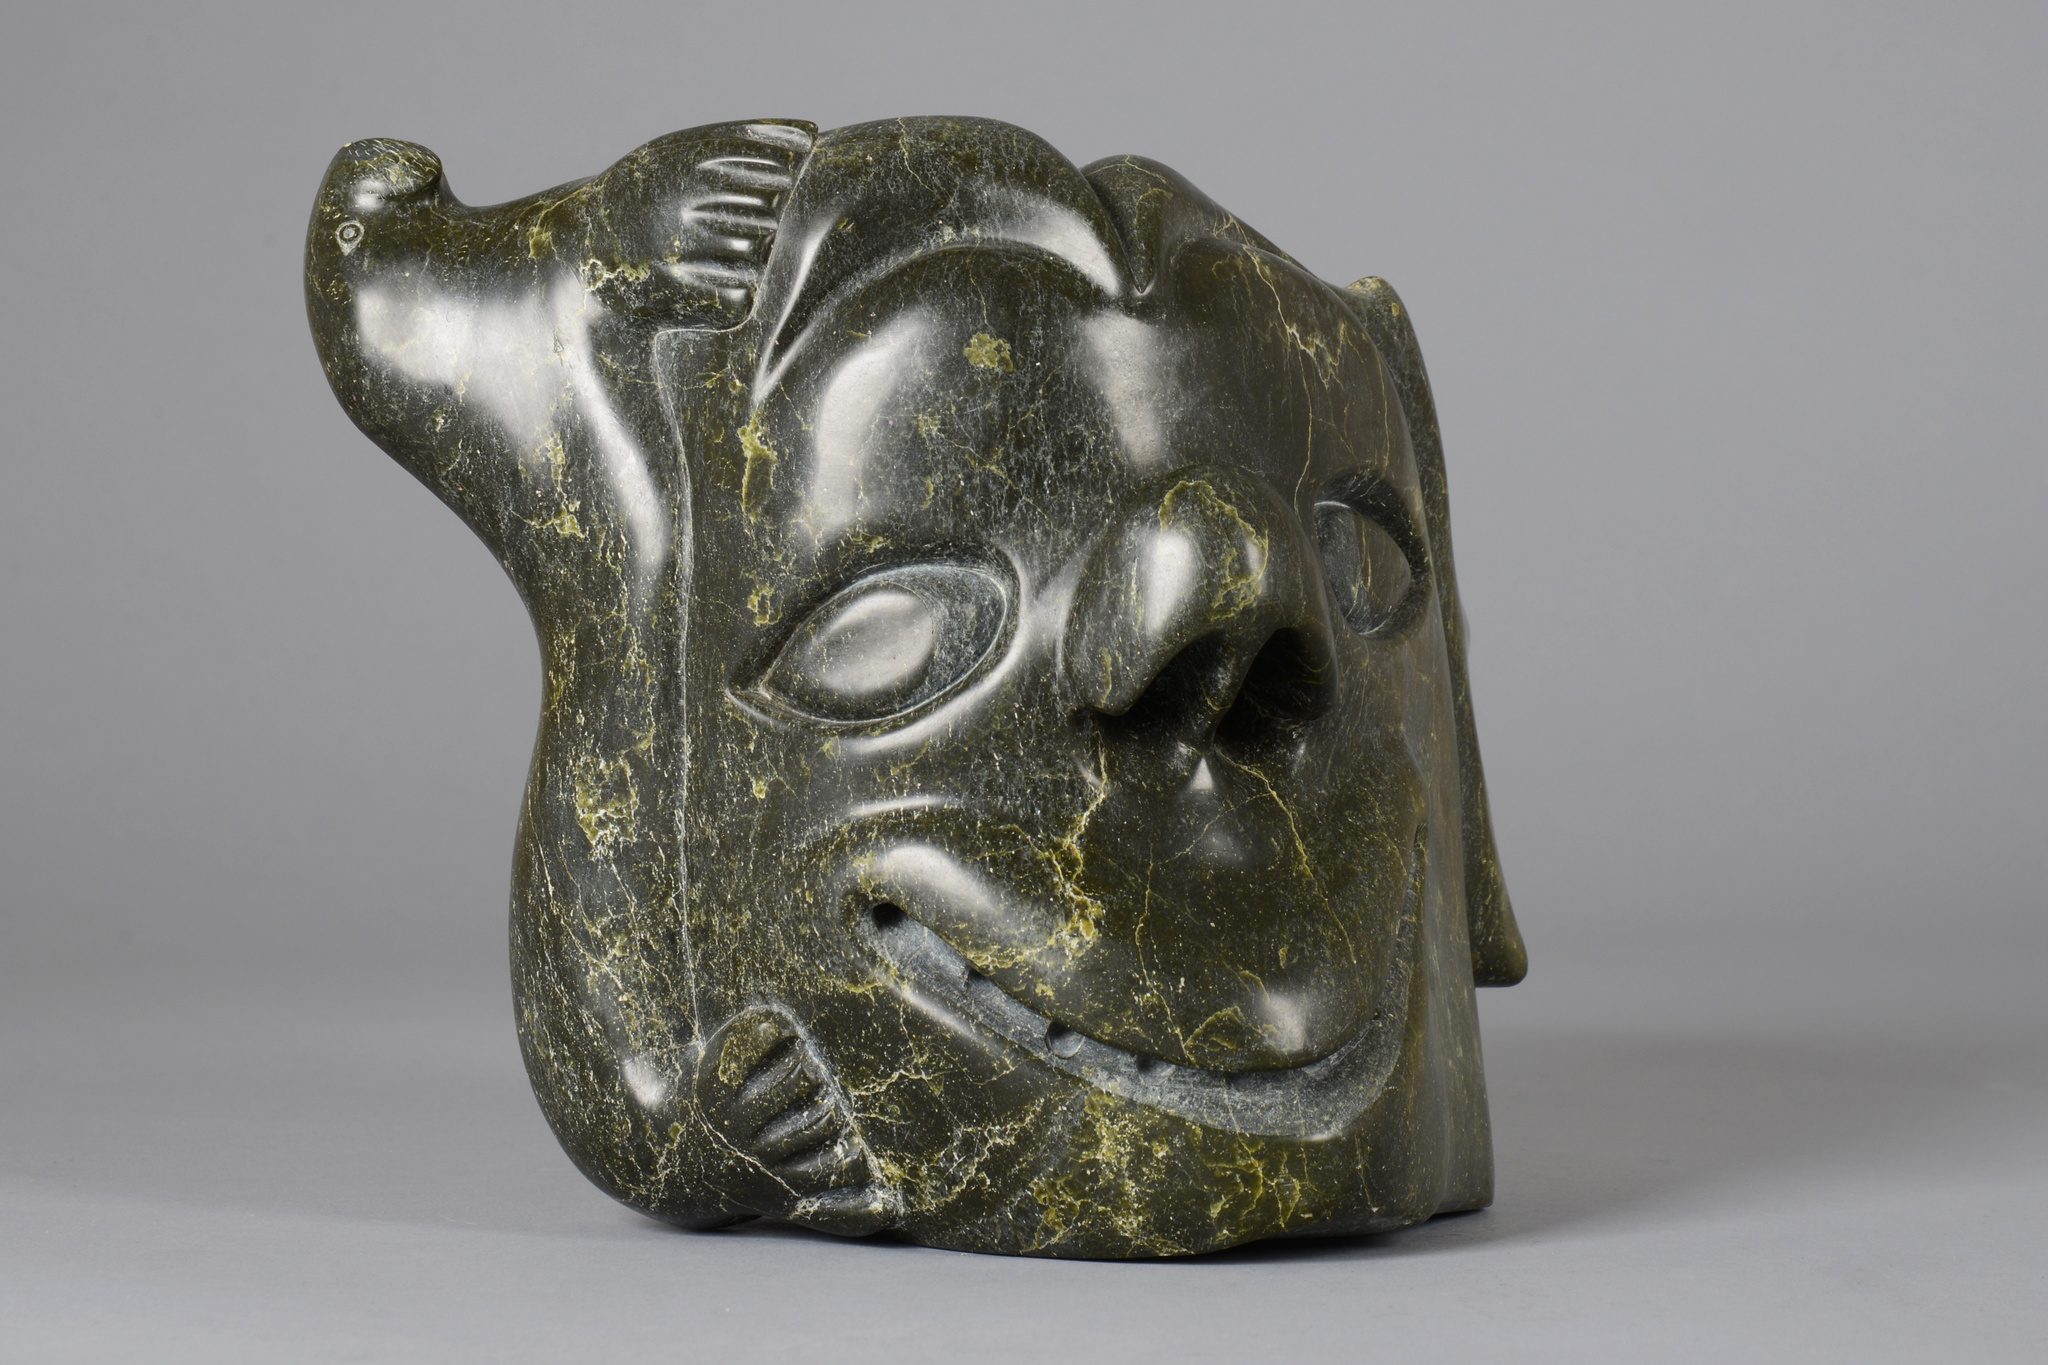 Head sculpture with seal